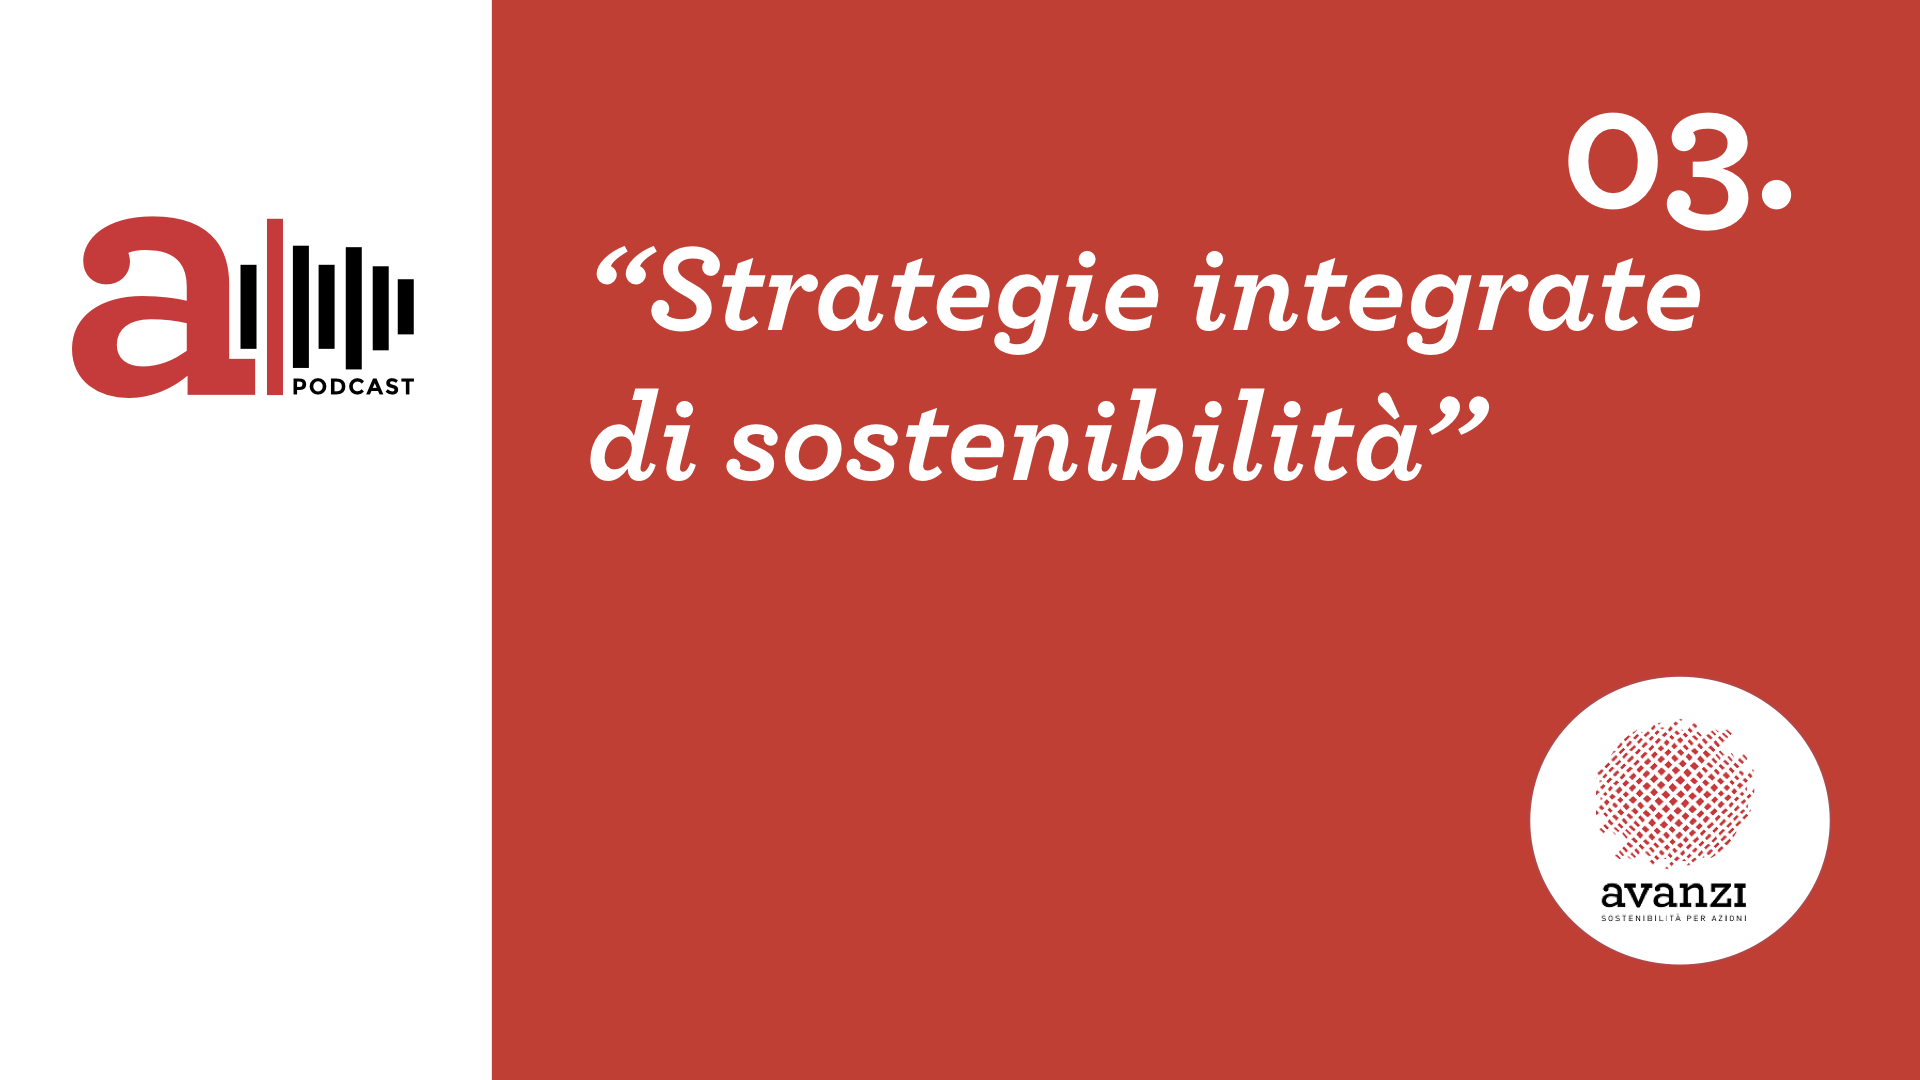 Strategie Integrate di sostenibilità